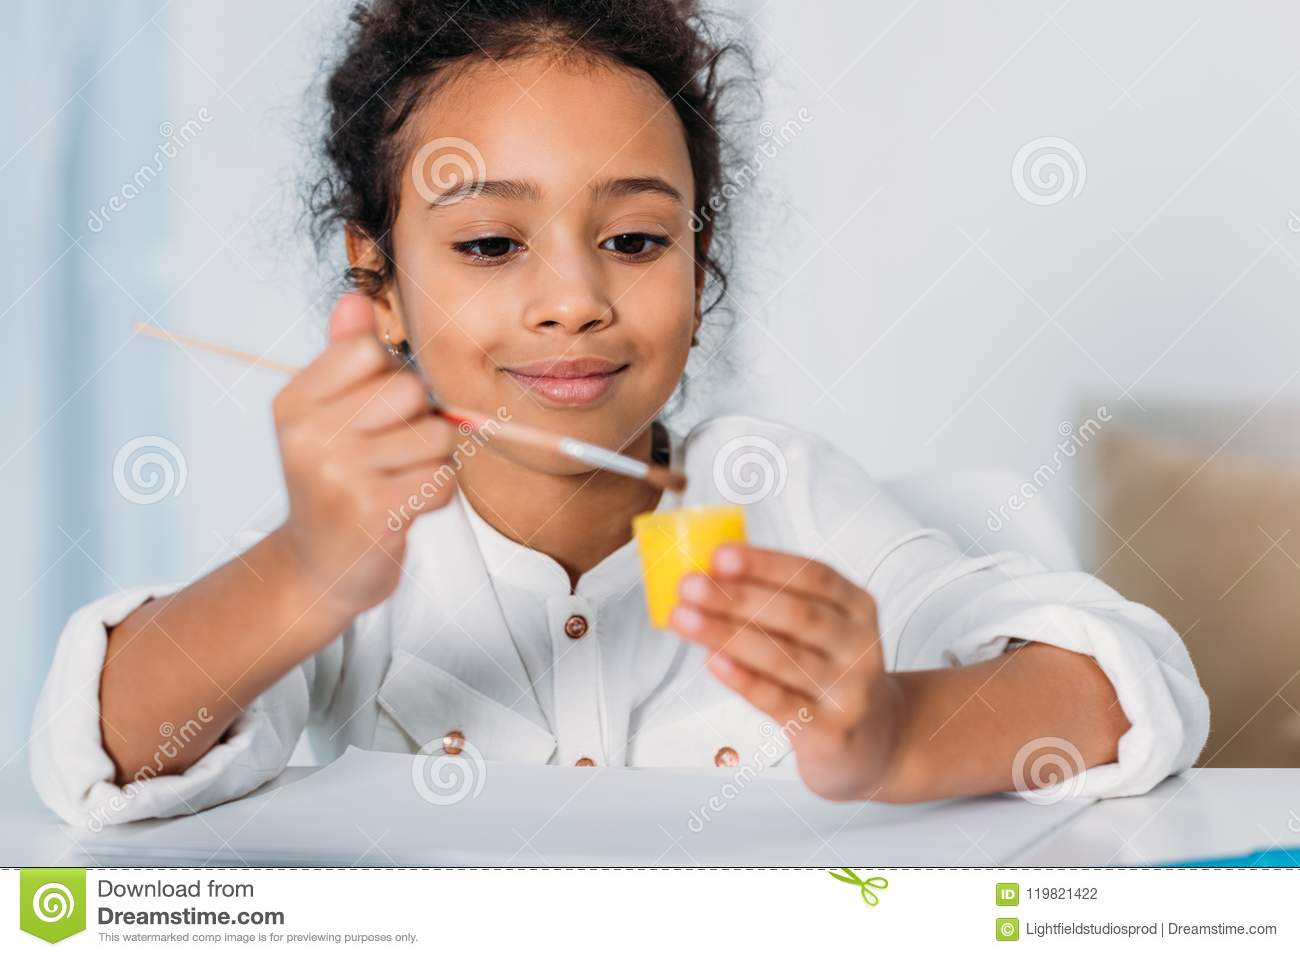 adorable african american kid putting paint brush into